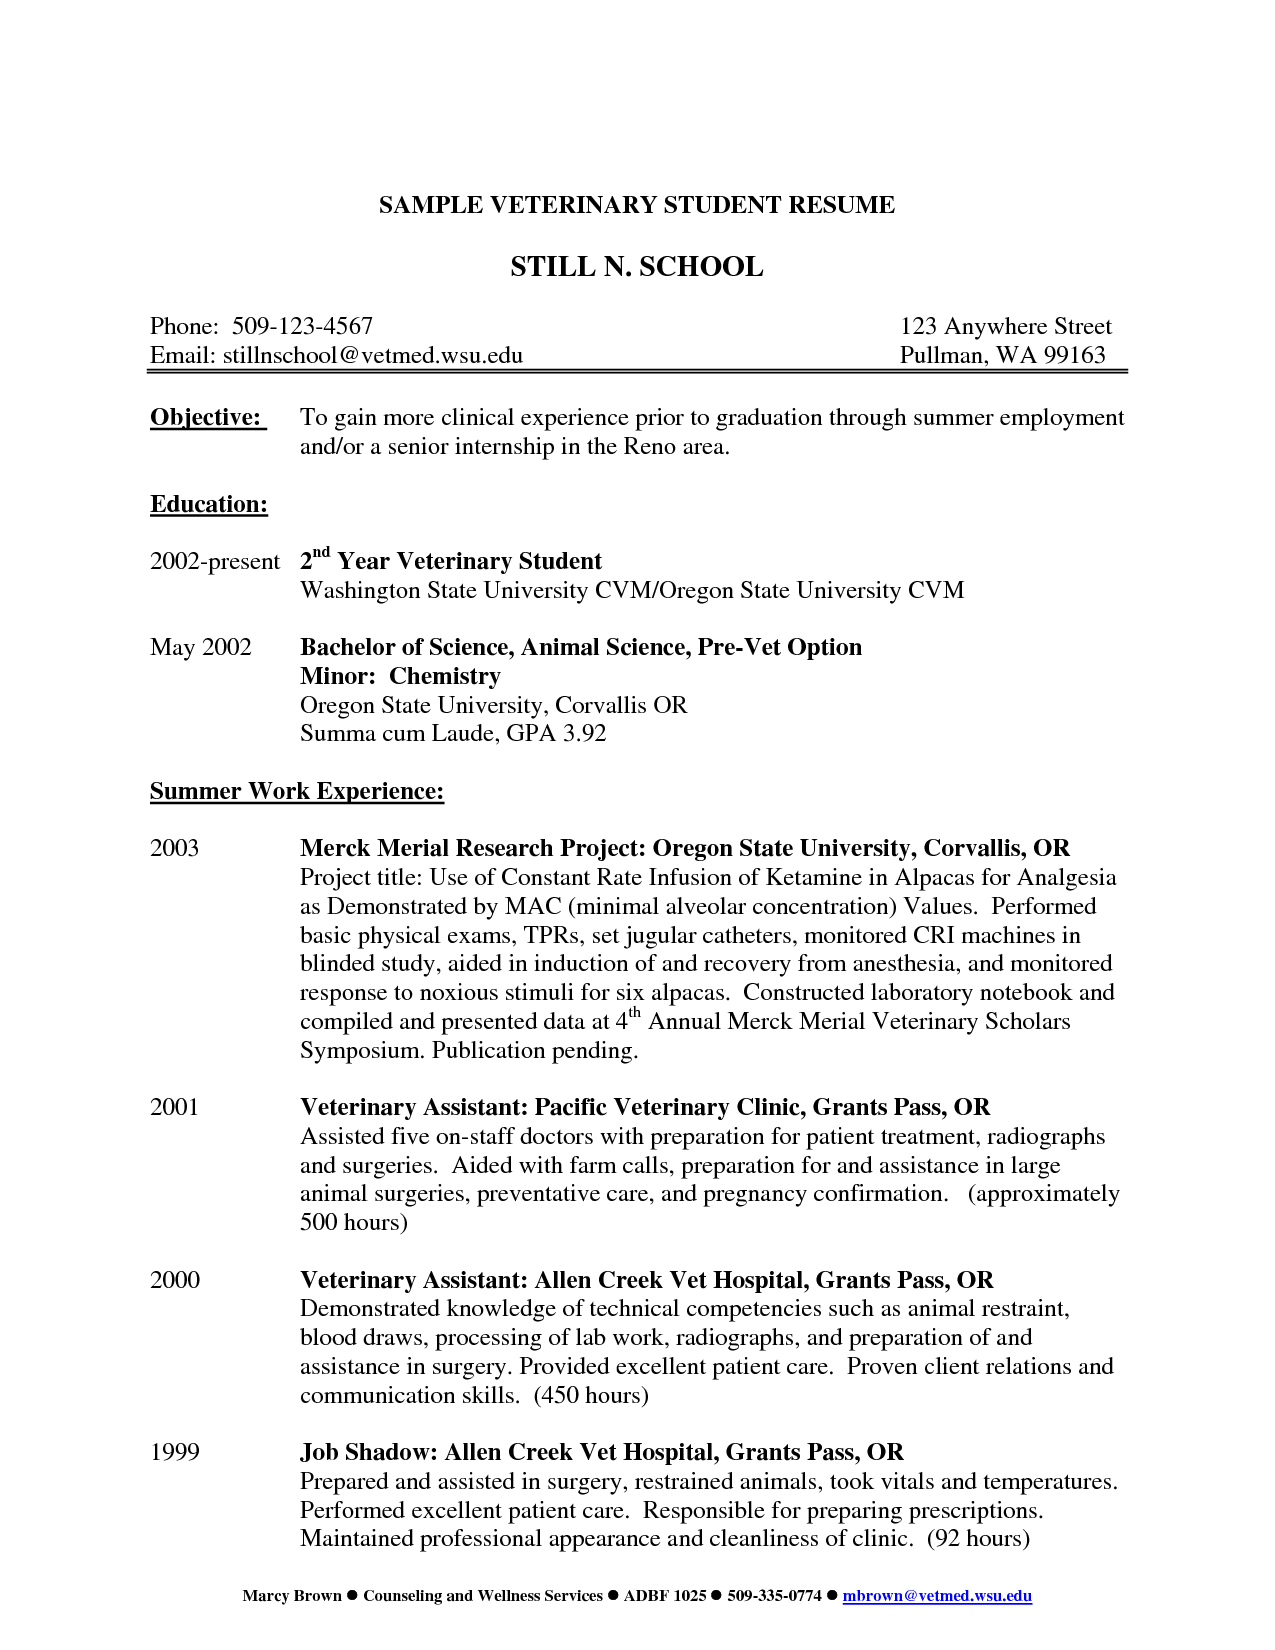 Sample Resume For Veterinary Assistant Veterinary Assistant Resume Occupationalexamplessamples 10 Acupuncture Resume Templates And 2015 Examples 1